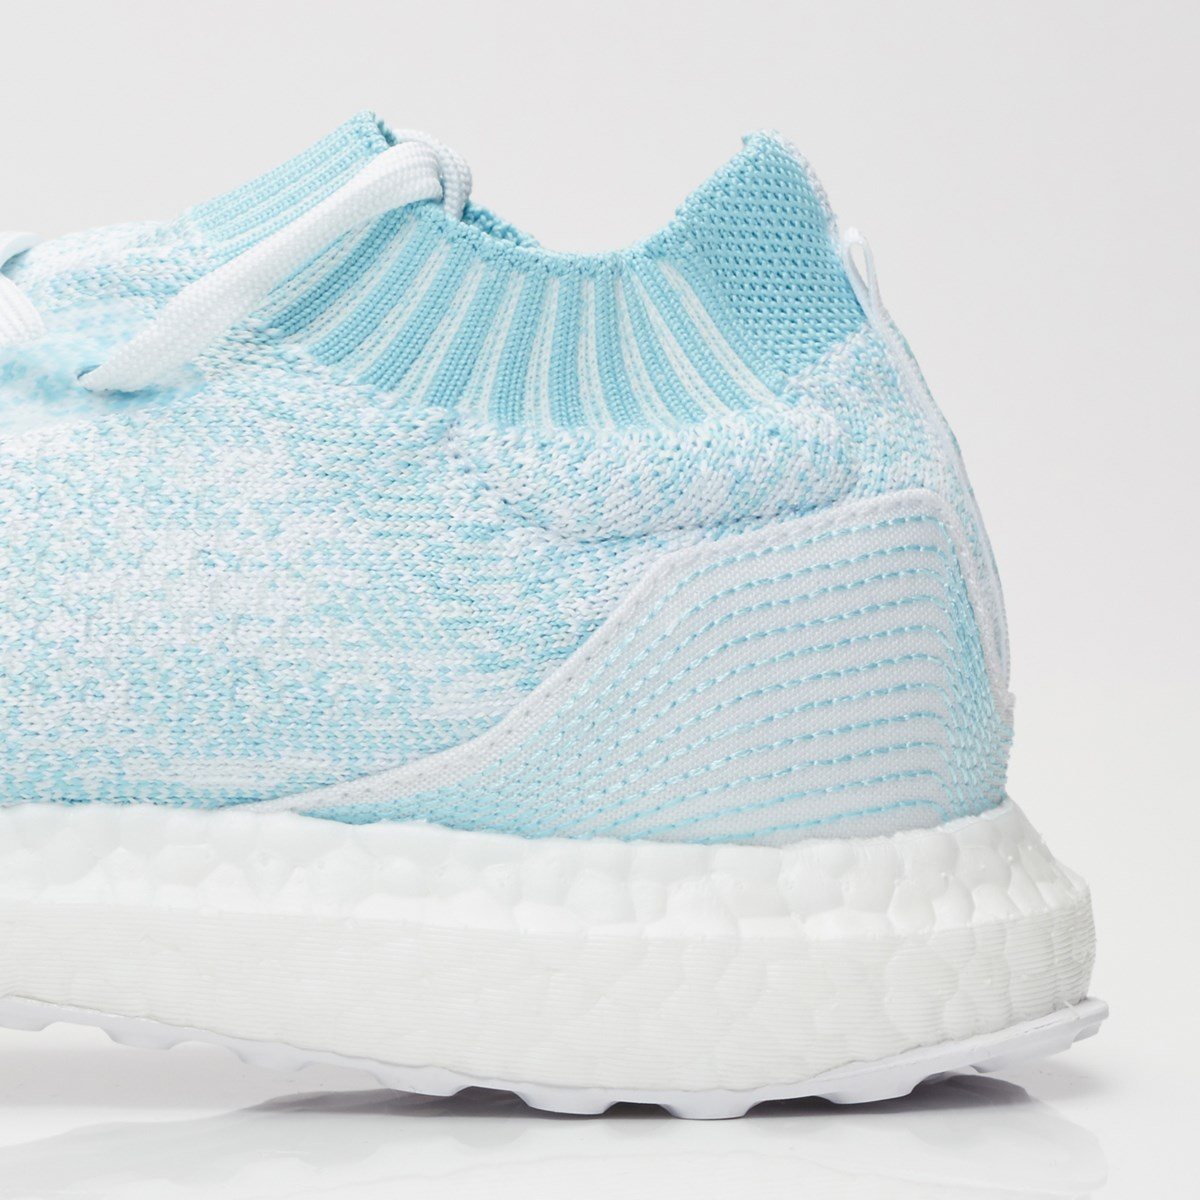 1872be59b8586 adidas UltraBOOST Uncaged Parley - Cp9686 - Sneakersnstuff ...